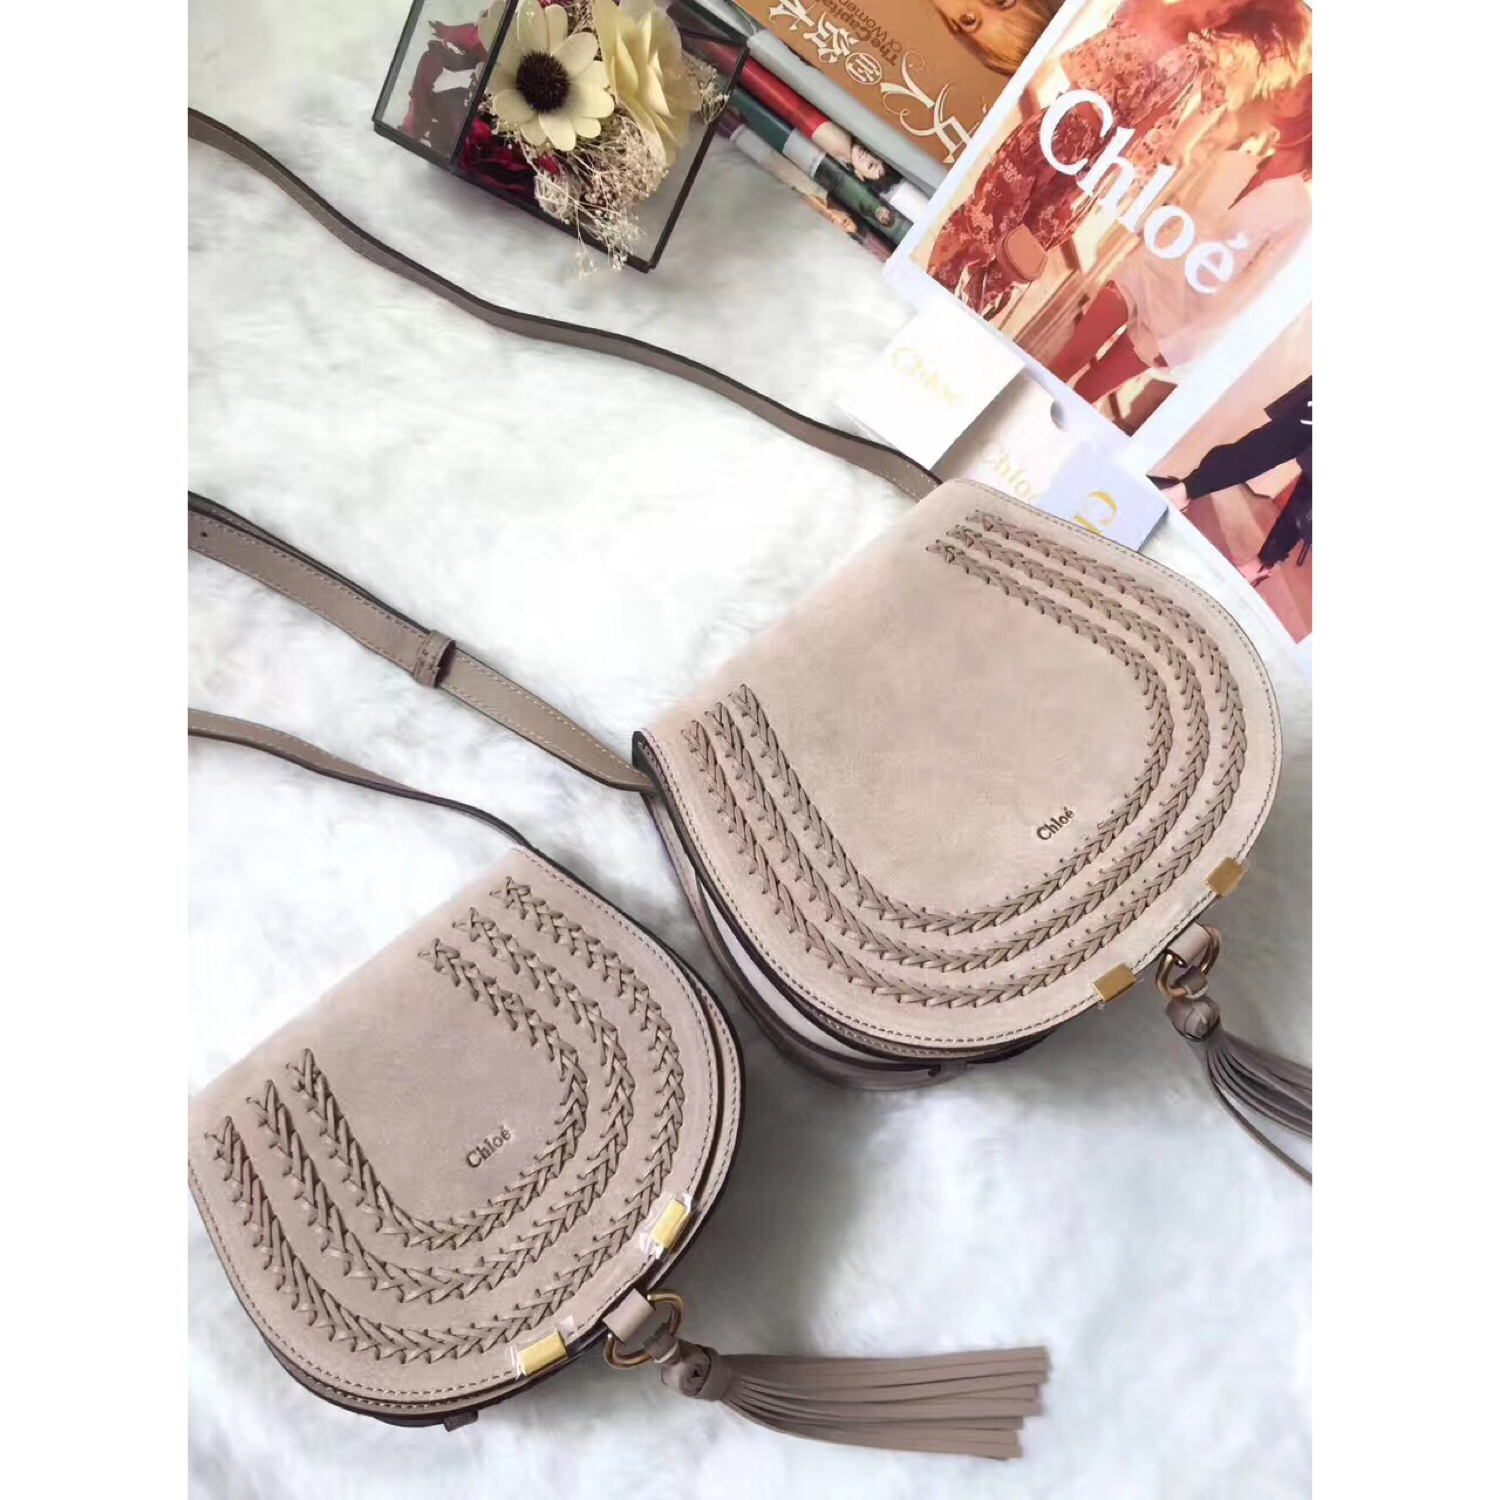 Chloe Marcie Grey Suede Crossbody Bag Size 19cm and 24cm